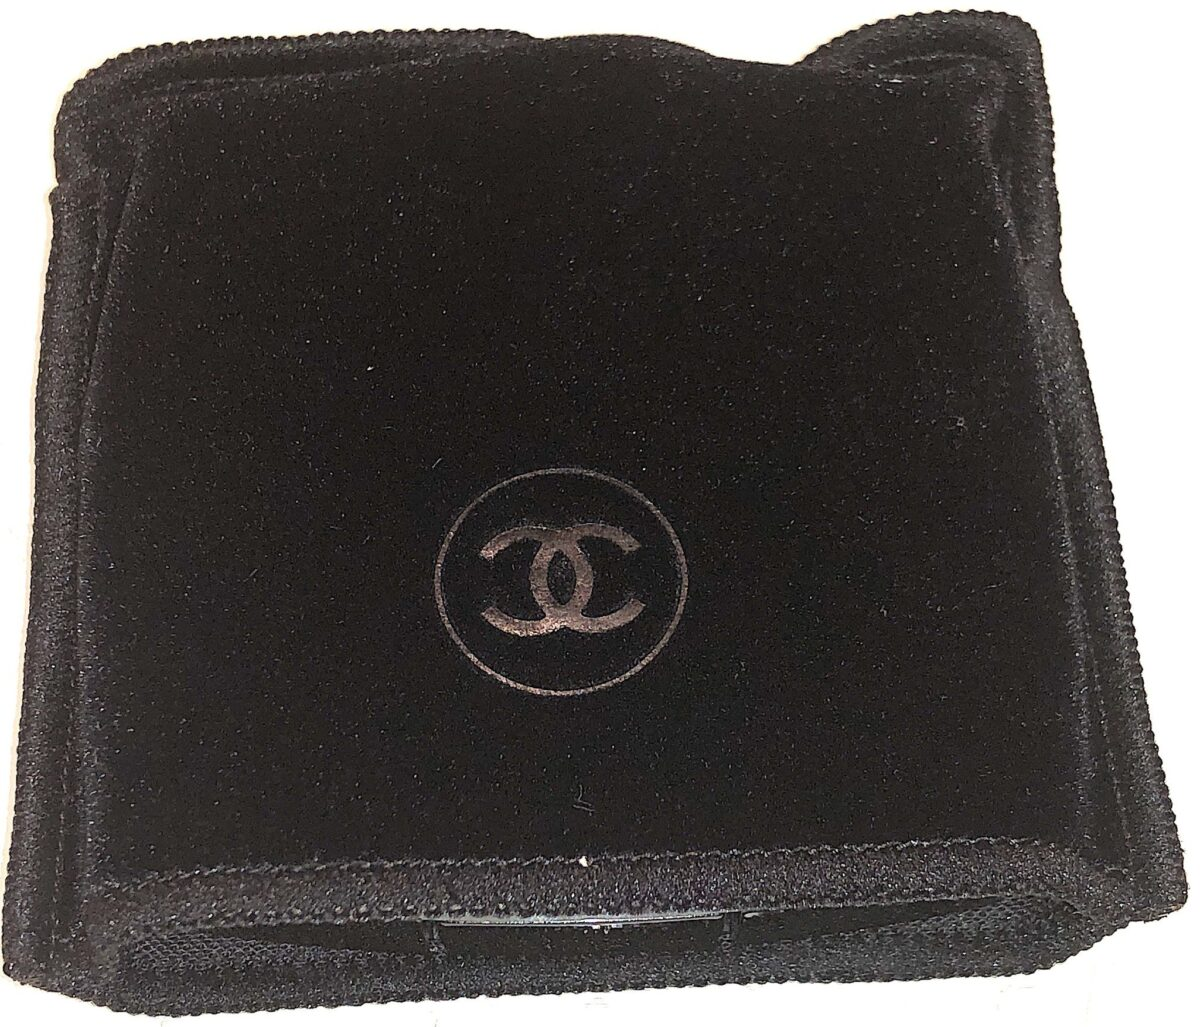 INSIDE THE VELVET POUCH IS THE CHANEL LES 4 OMBRES EYESHADOW PALETTE